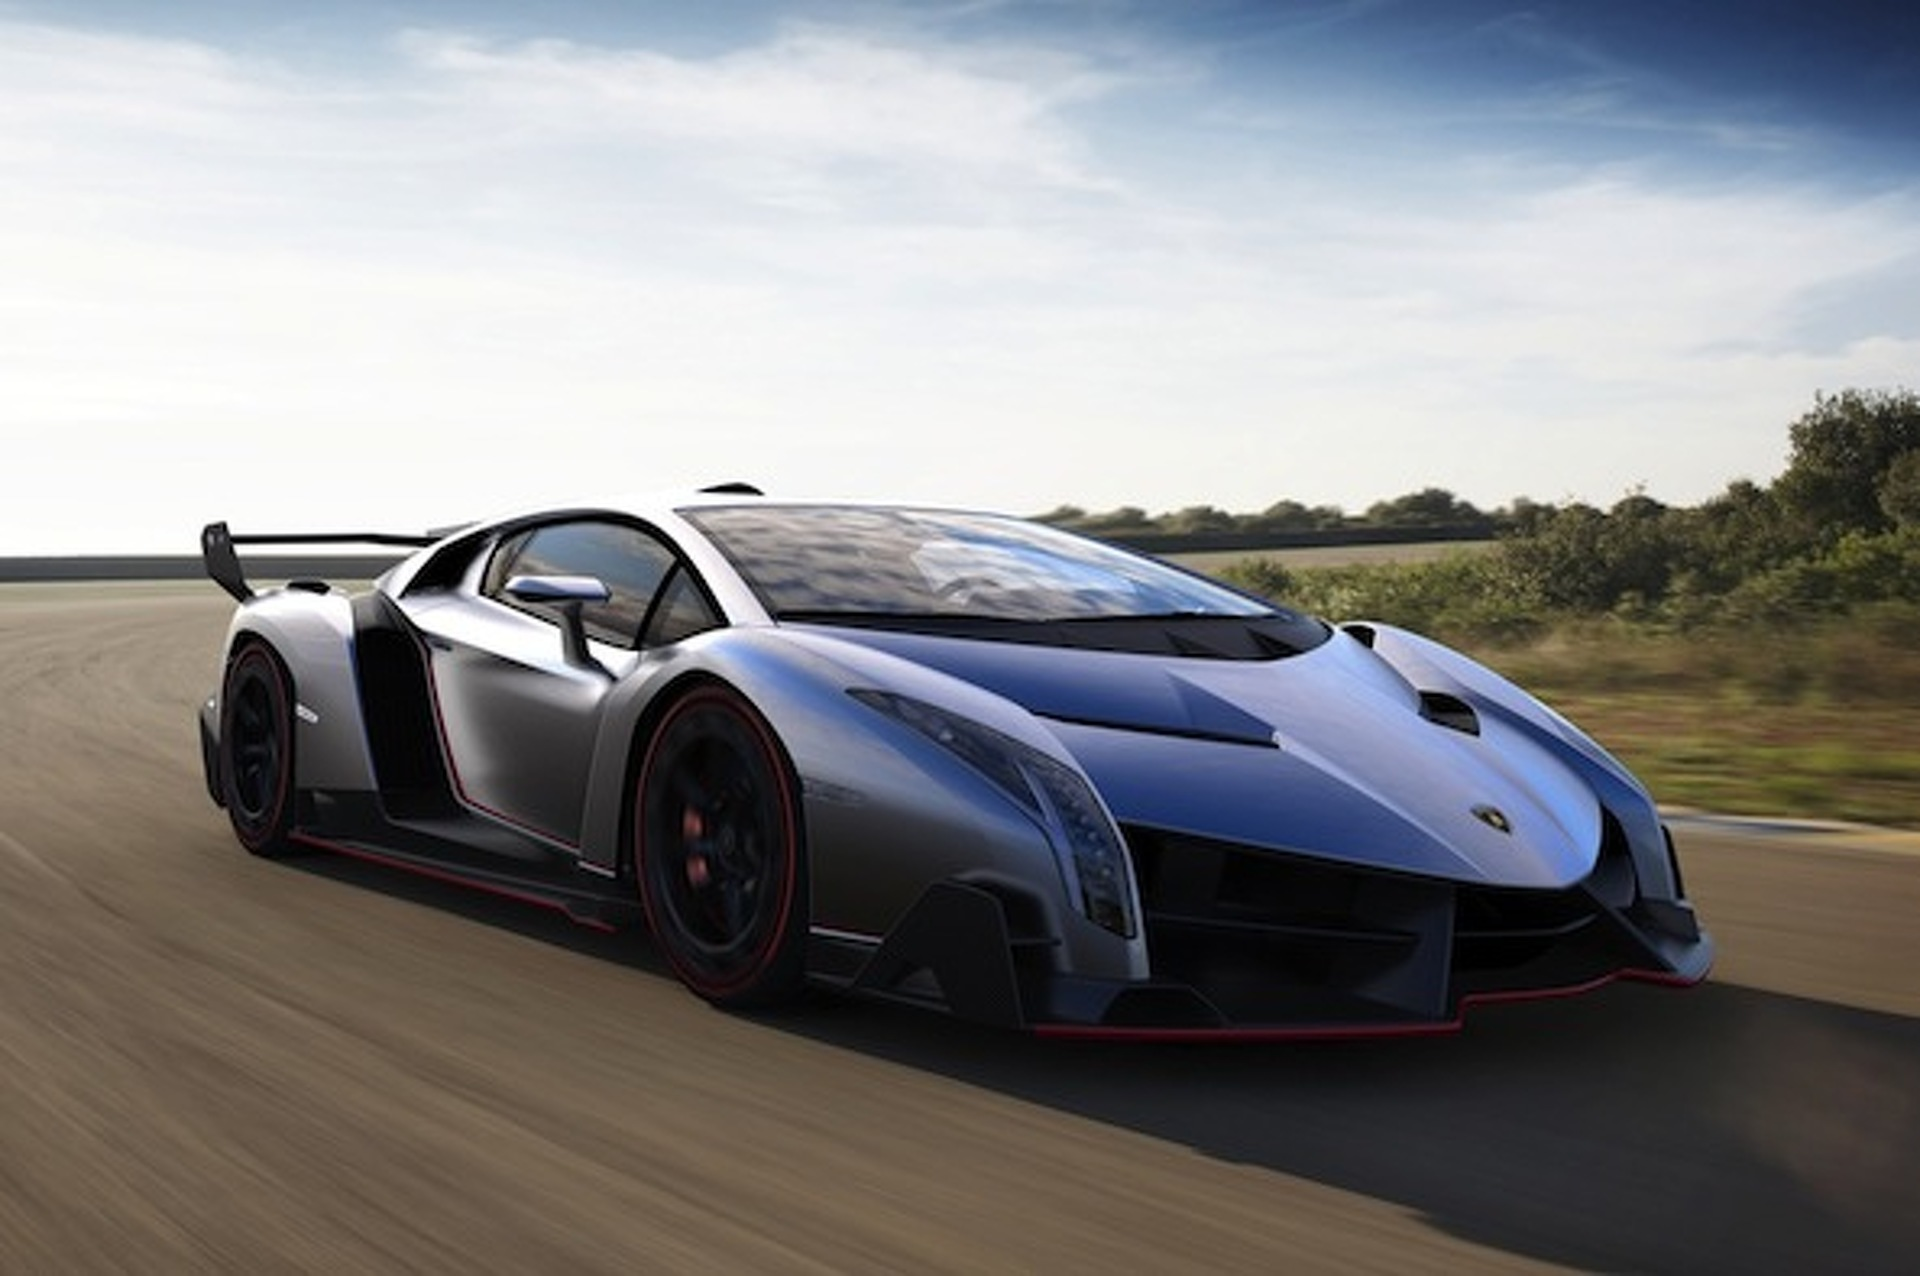 Lamborghini Veneno Leaked: $4.6 Million and Fast